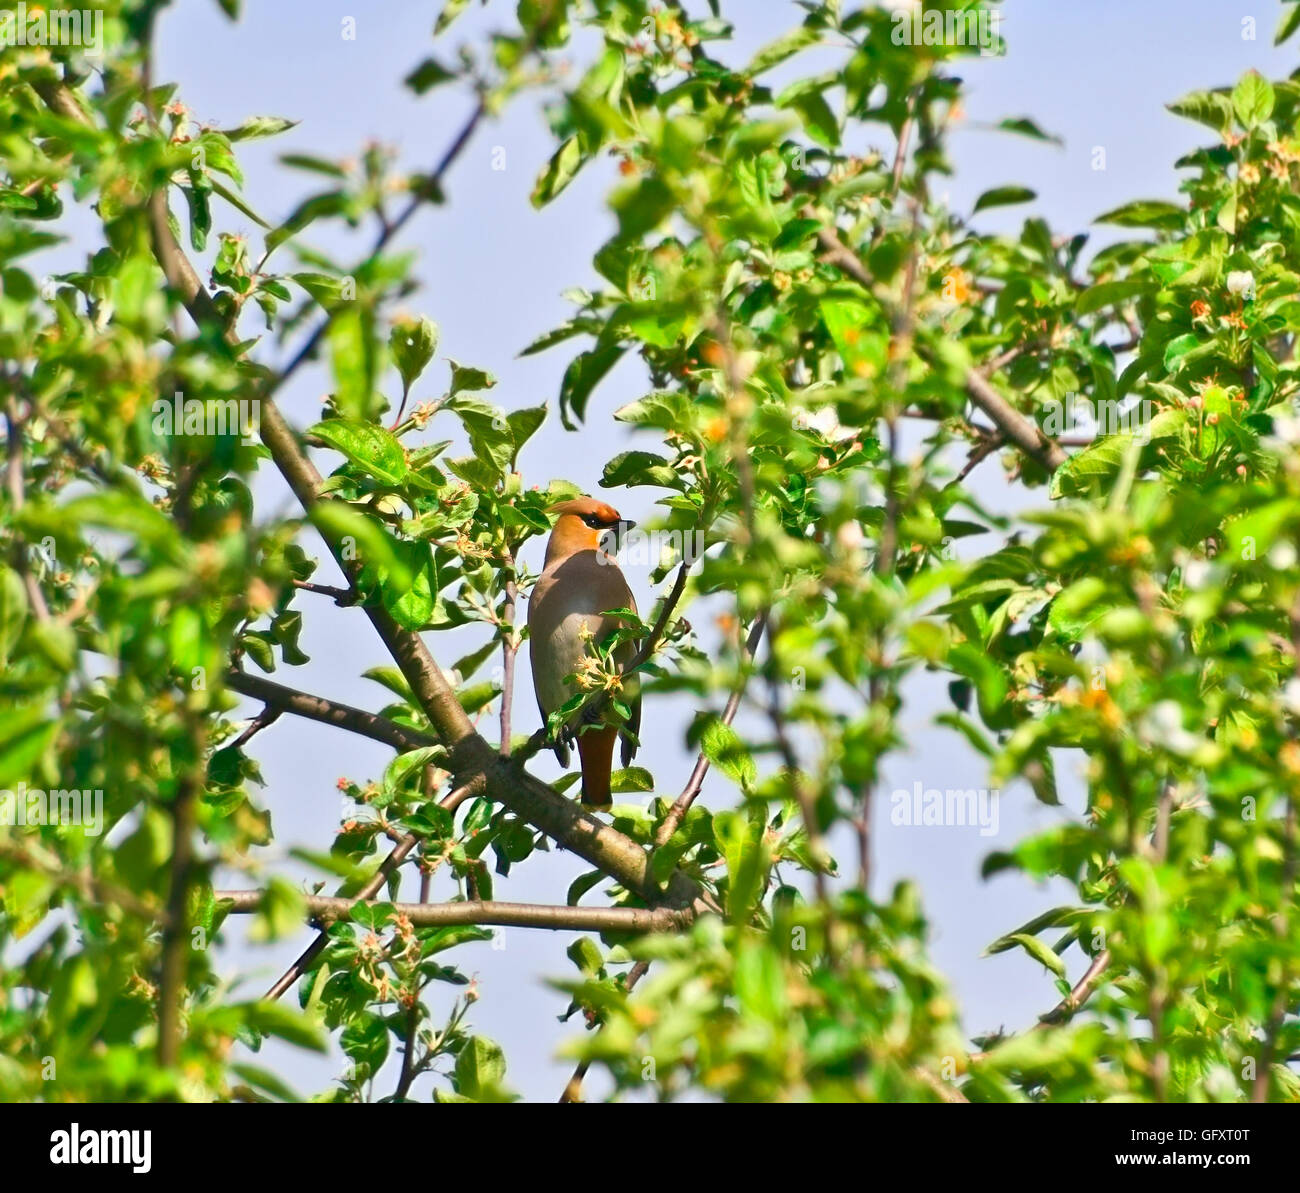 the Waxwing in foliage - Stock Image